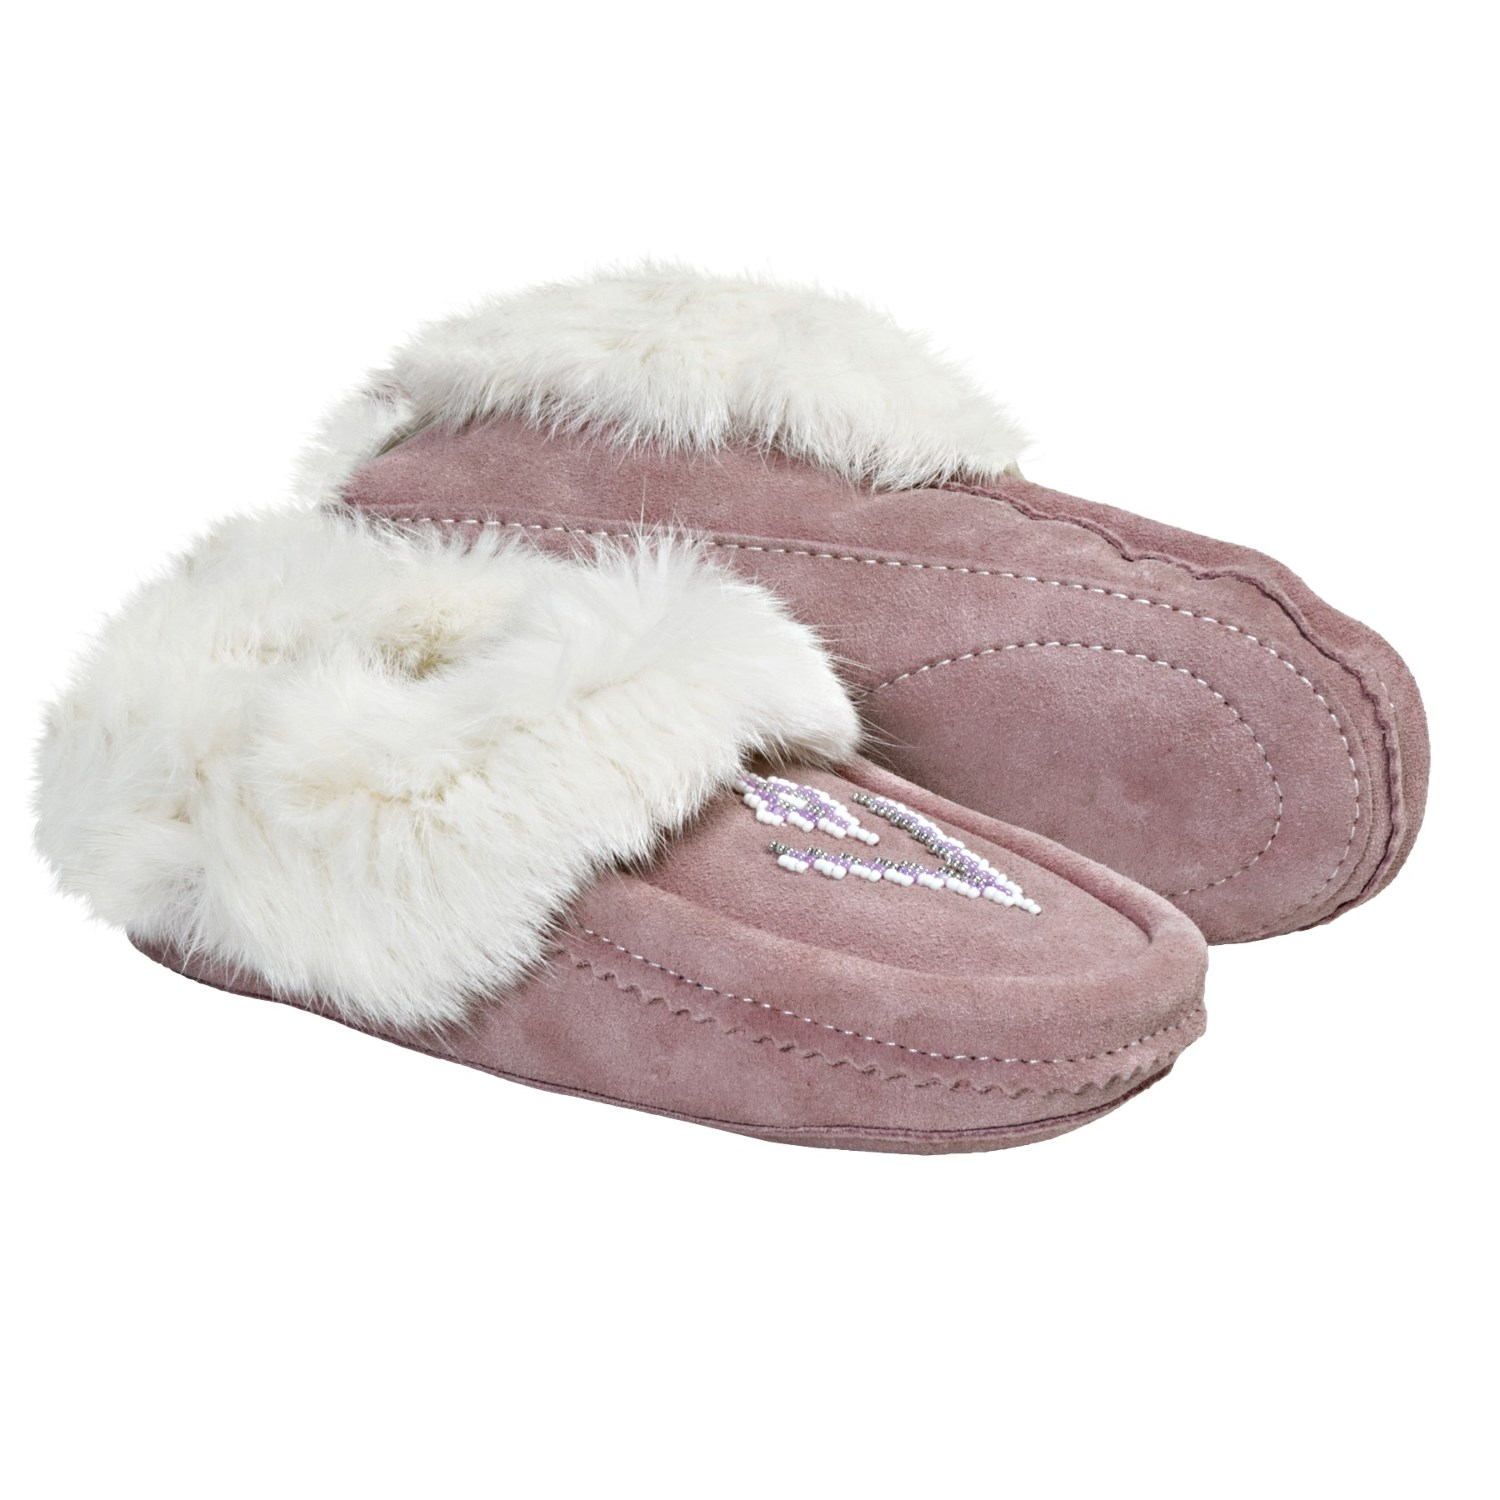 Suede Moccasin Slippers - Shearling-Lined, Rabbit Fur Trim (For Women